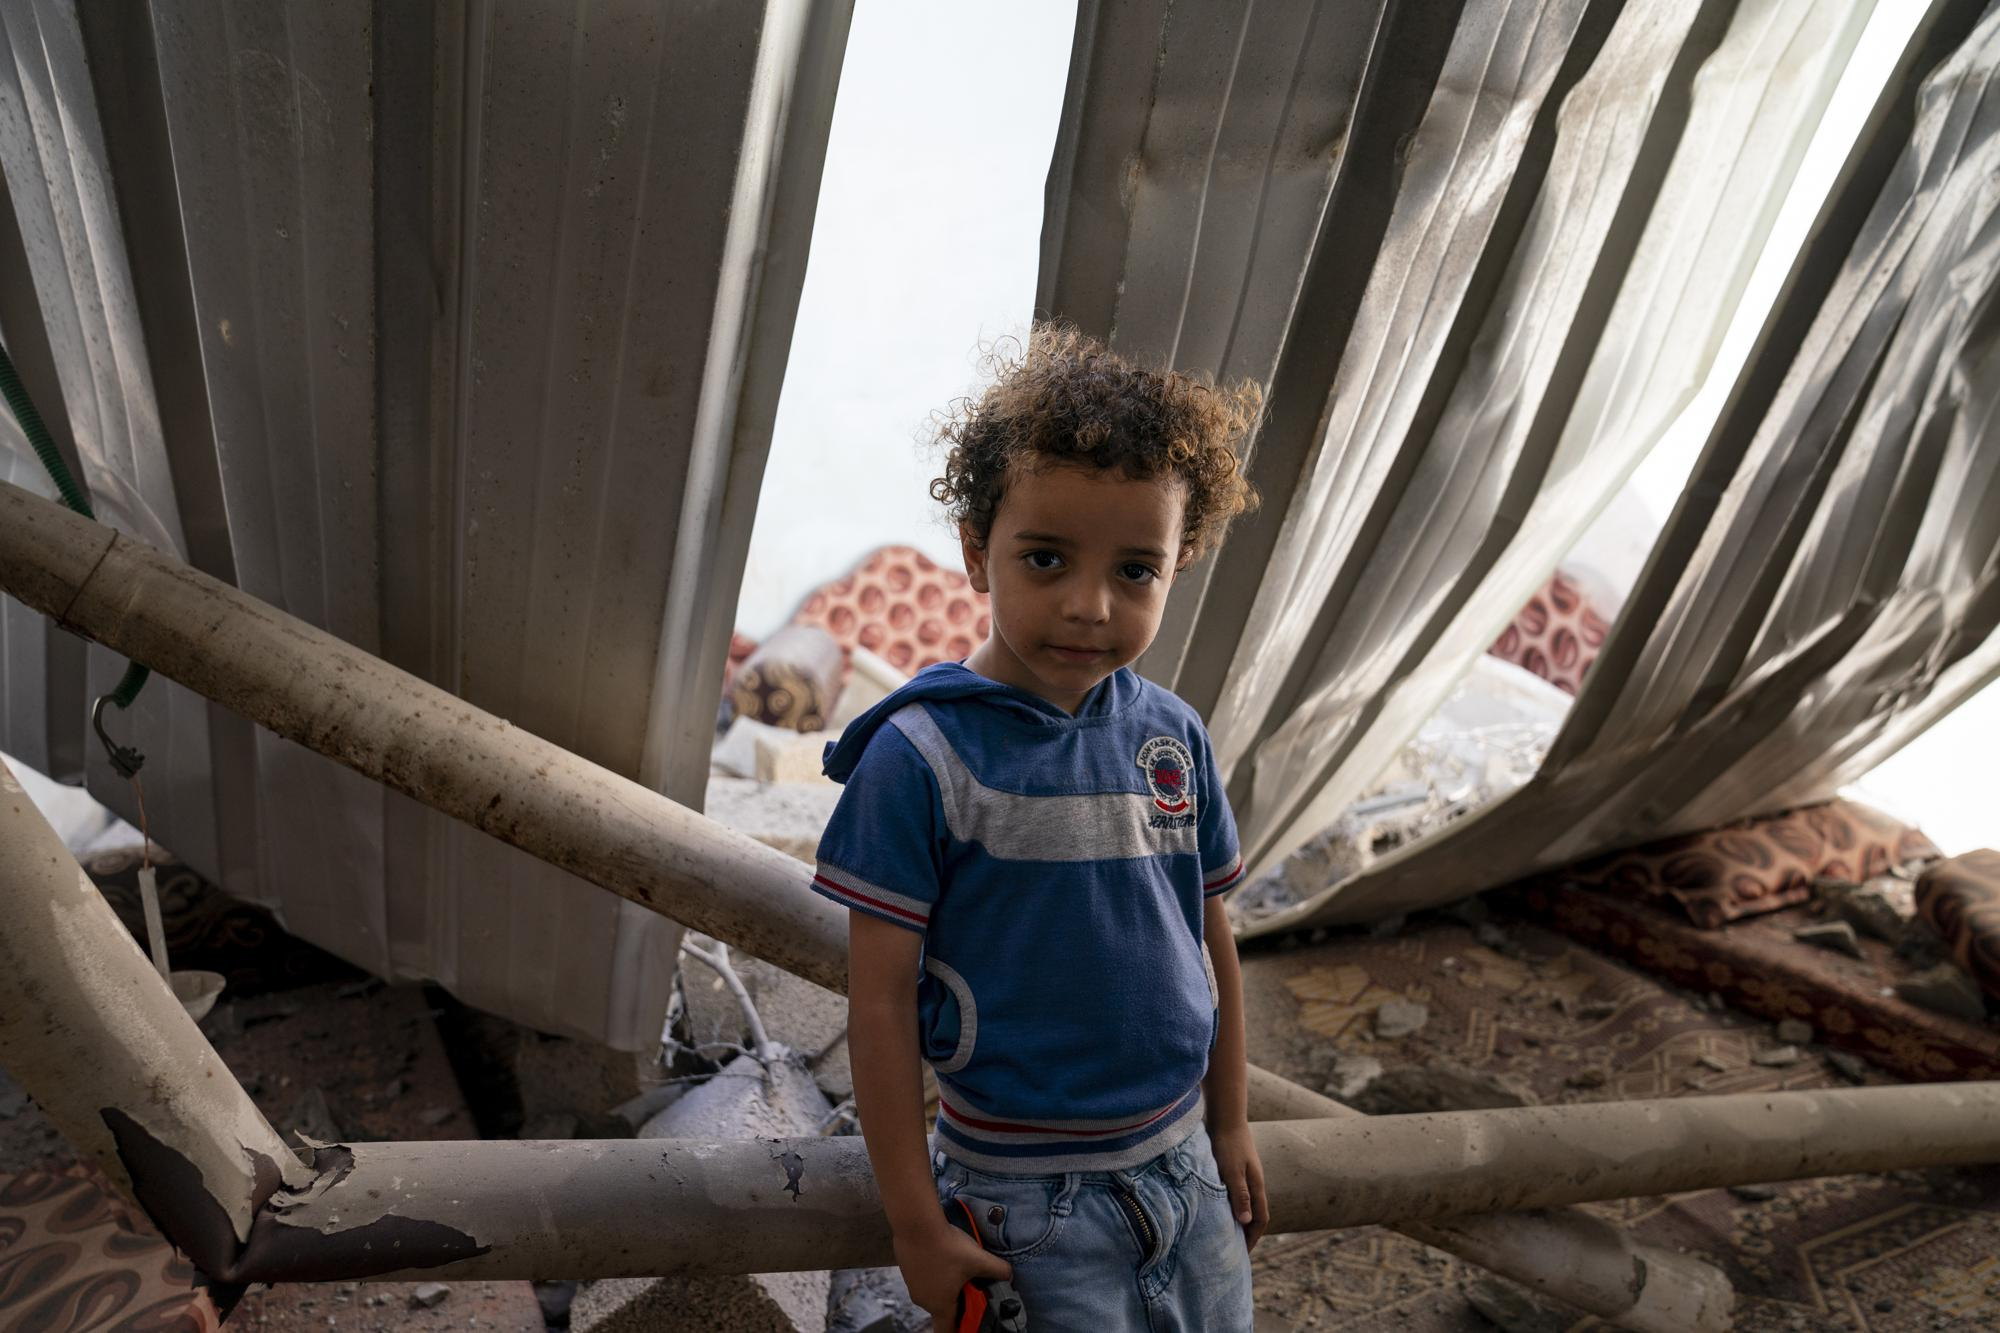 Mohammad Ismail, 4, sits for a portrait in his bedroom that was damaged when an airstrike destroyed a nearby building prior to a cease-fire that halted an 11-day war between Gaza's Hamas rulers and Israel, Thursday, May 27, 2021, in Maghazi, Gaza Strip. (AP Photo/John Minchillo)